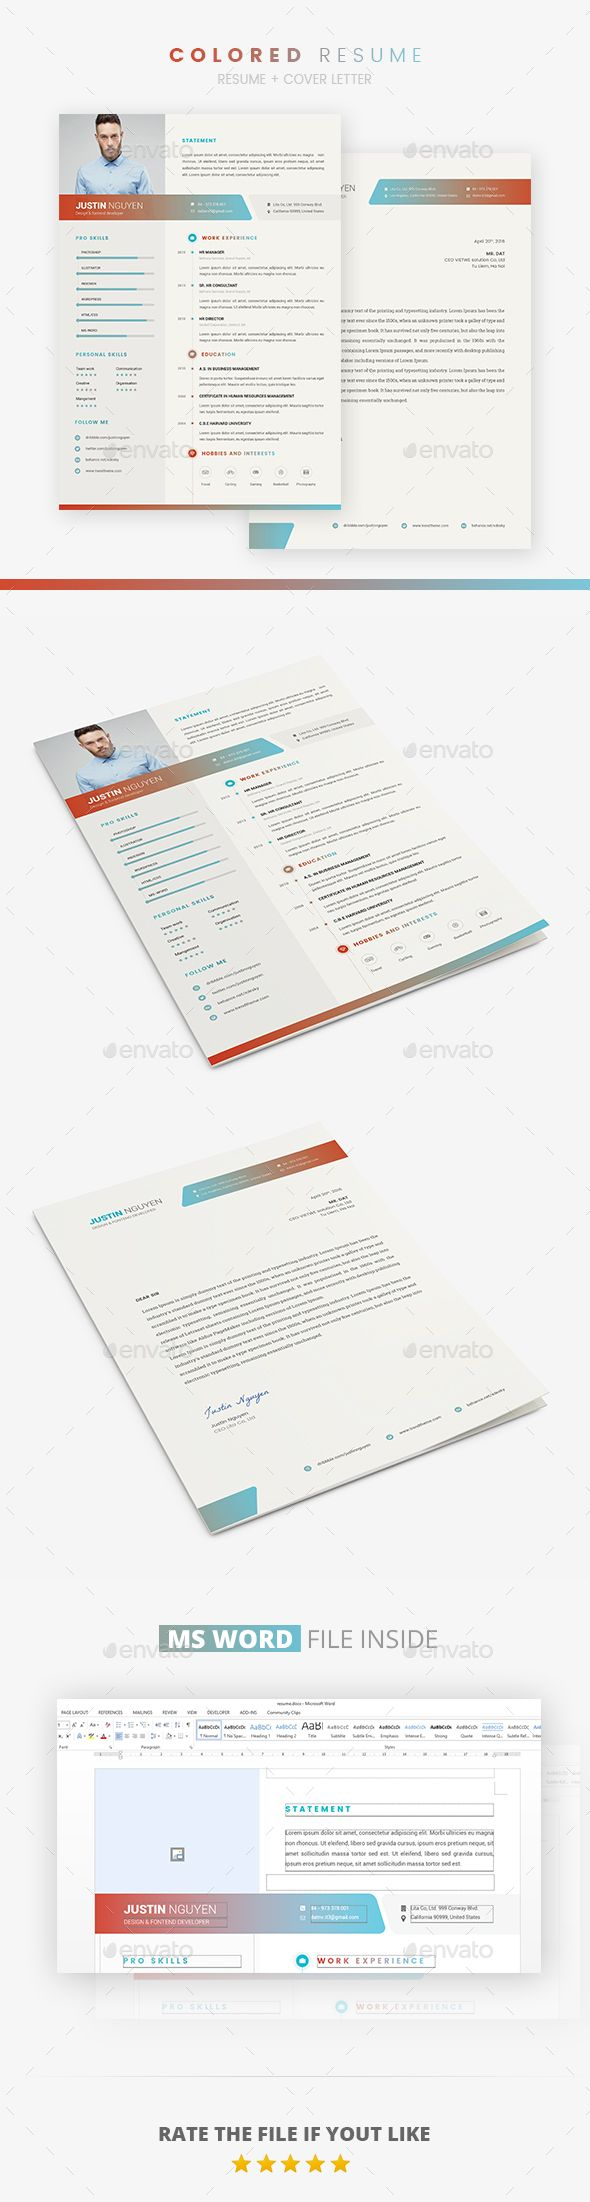 973 best images about design resumes on pinterest